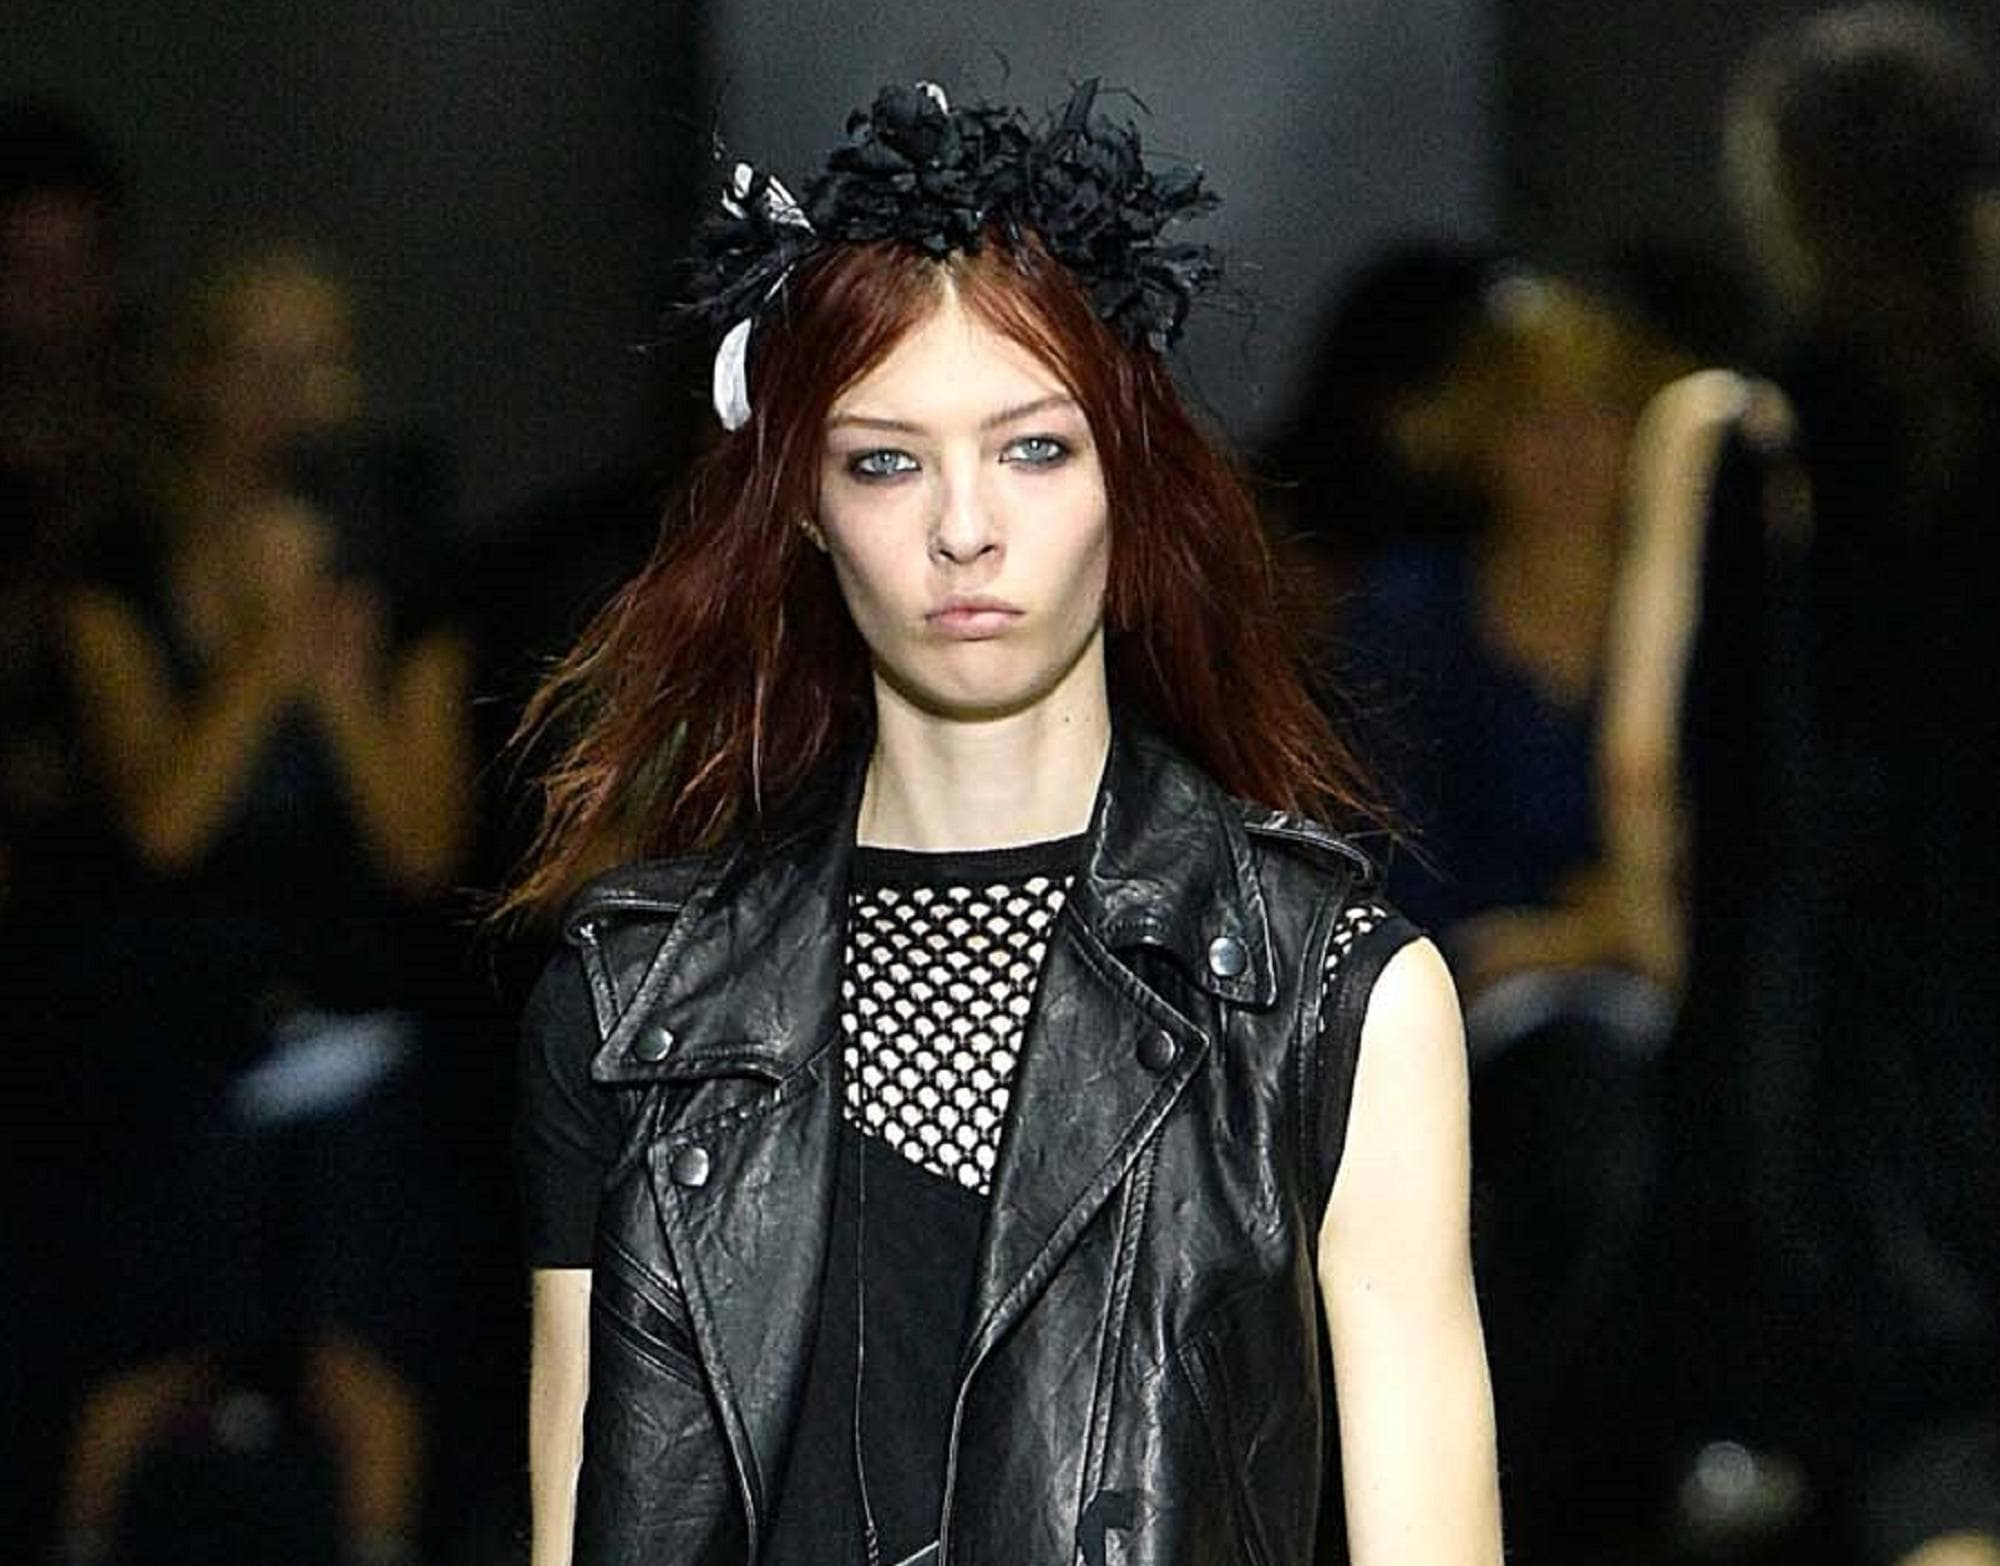 Goth hairstyles: Runway shot oman wearing black leather vest and black see-through top with reddish brown hair in a textured hairstyle topped with a black hair pece